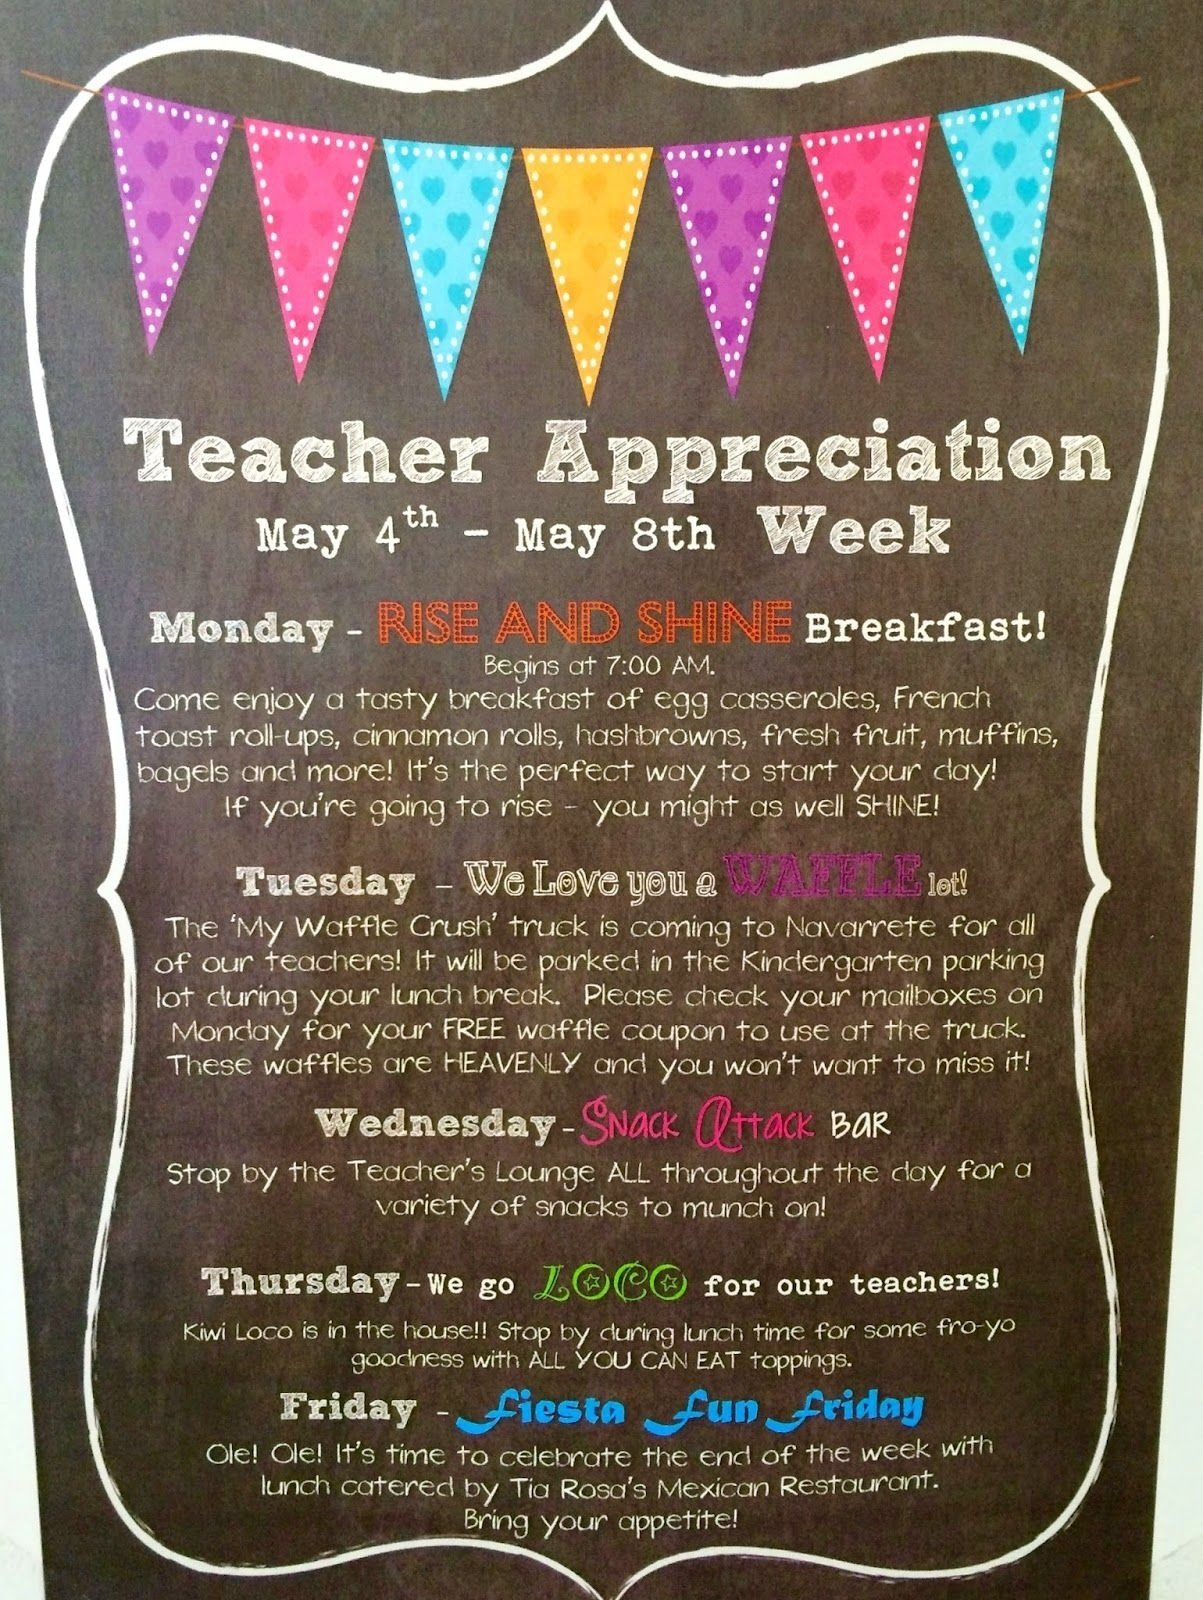 10 Gorgeous Teacher Appreciation Week Theme Ideas marci coombs teacher appreciation breakfast pta pinterest